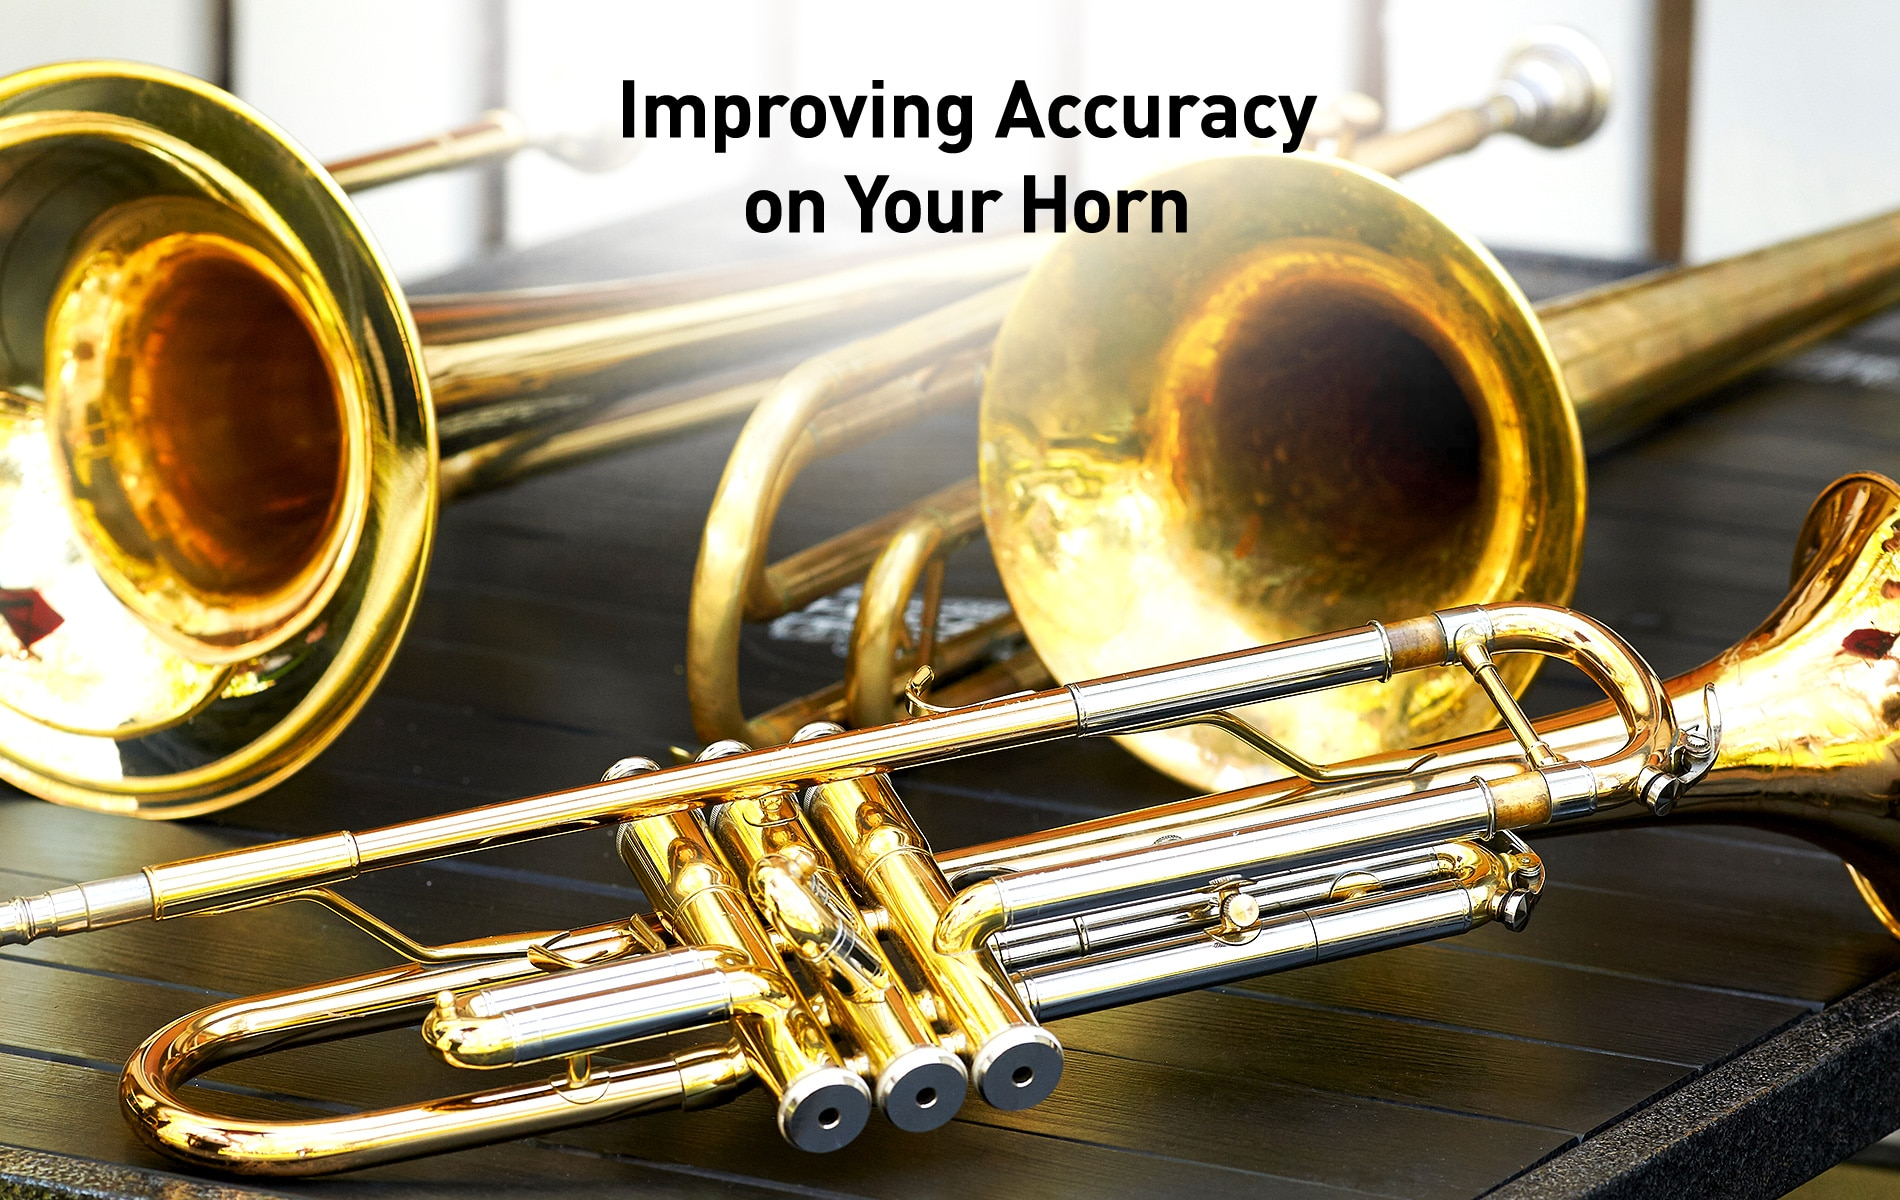 Tips for Improving Accuracy on the Horn